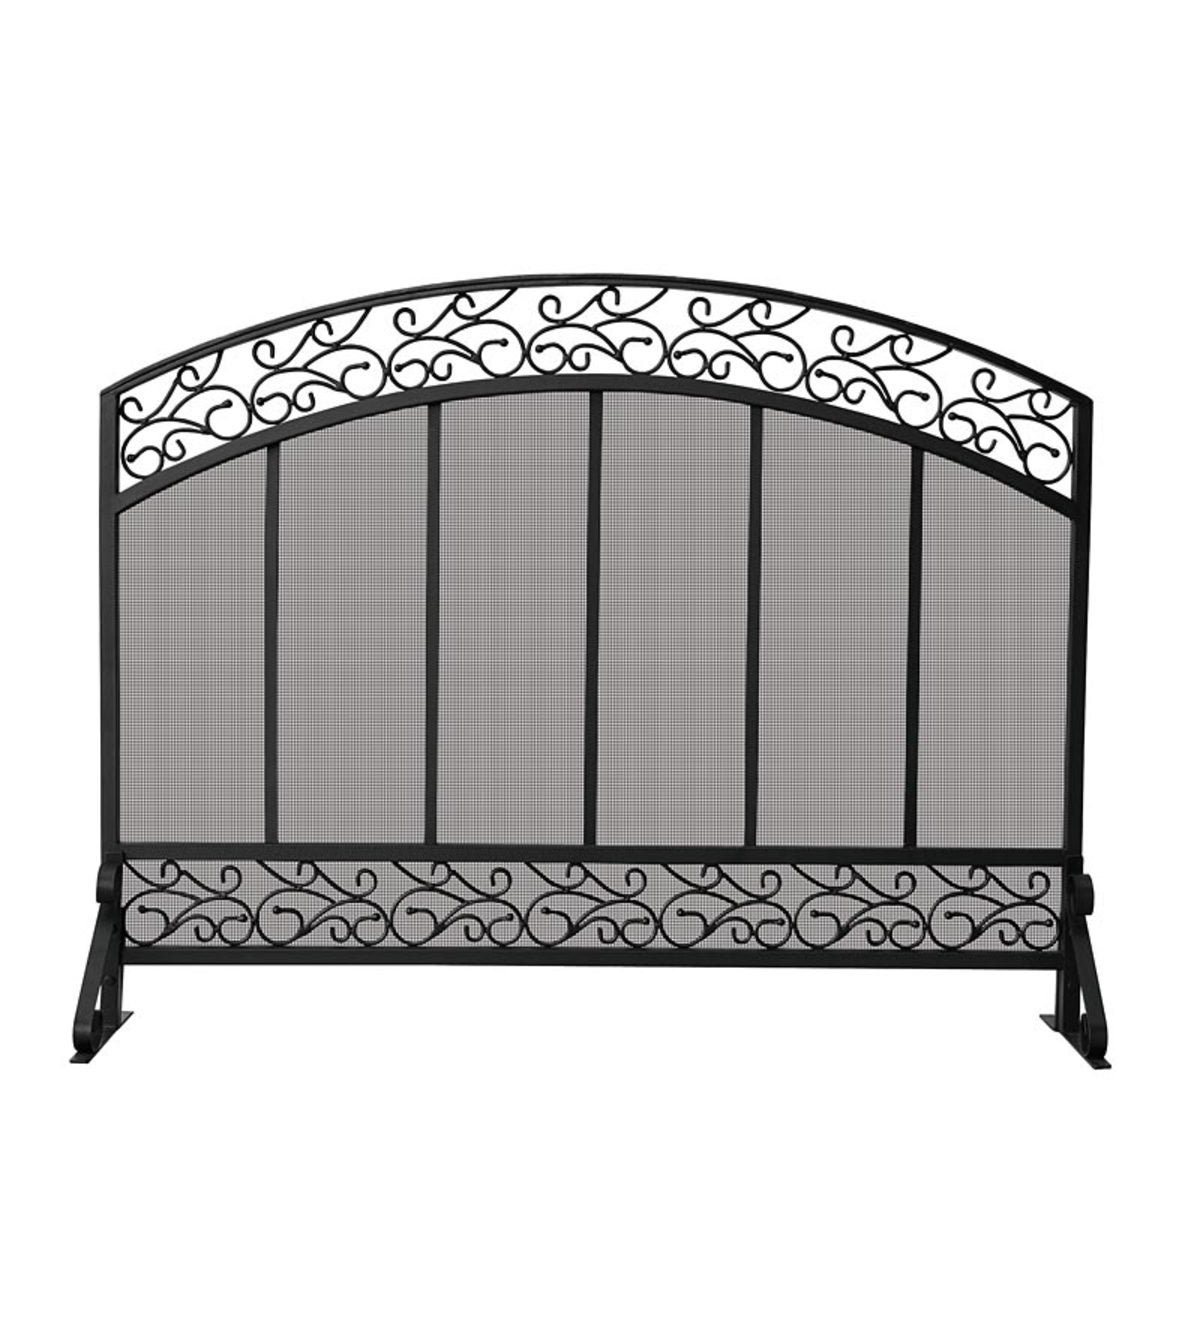 Black Wrought Iron Single Panel Fireplace Screen with Hammered Copper-Top Trim